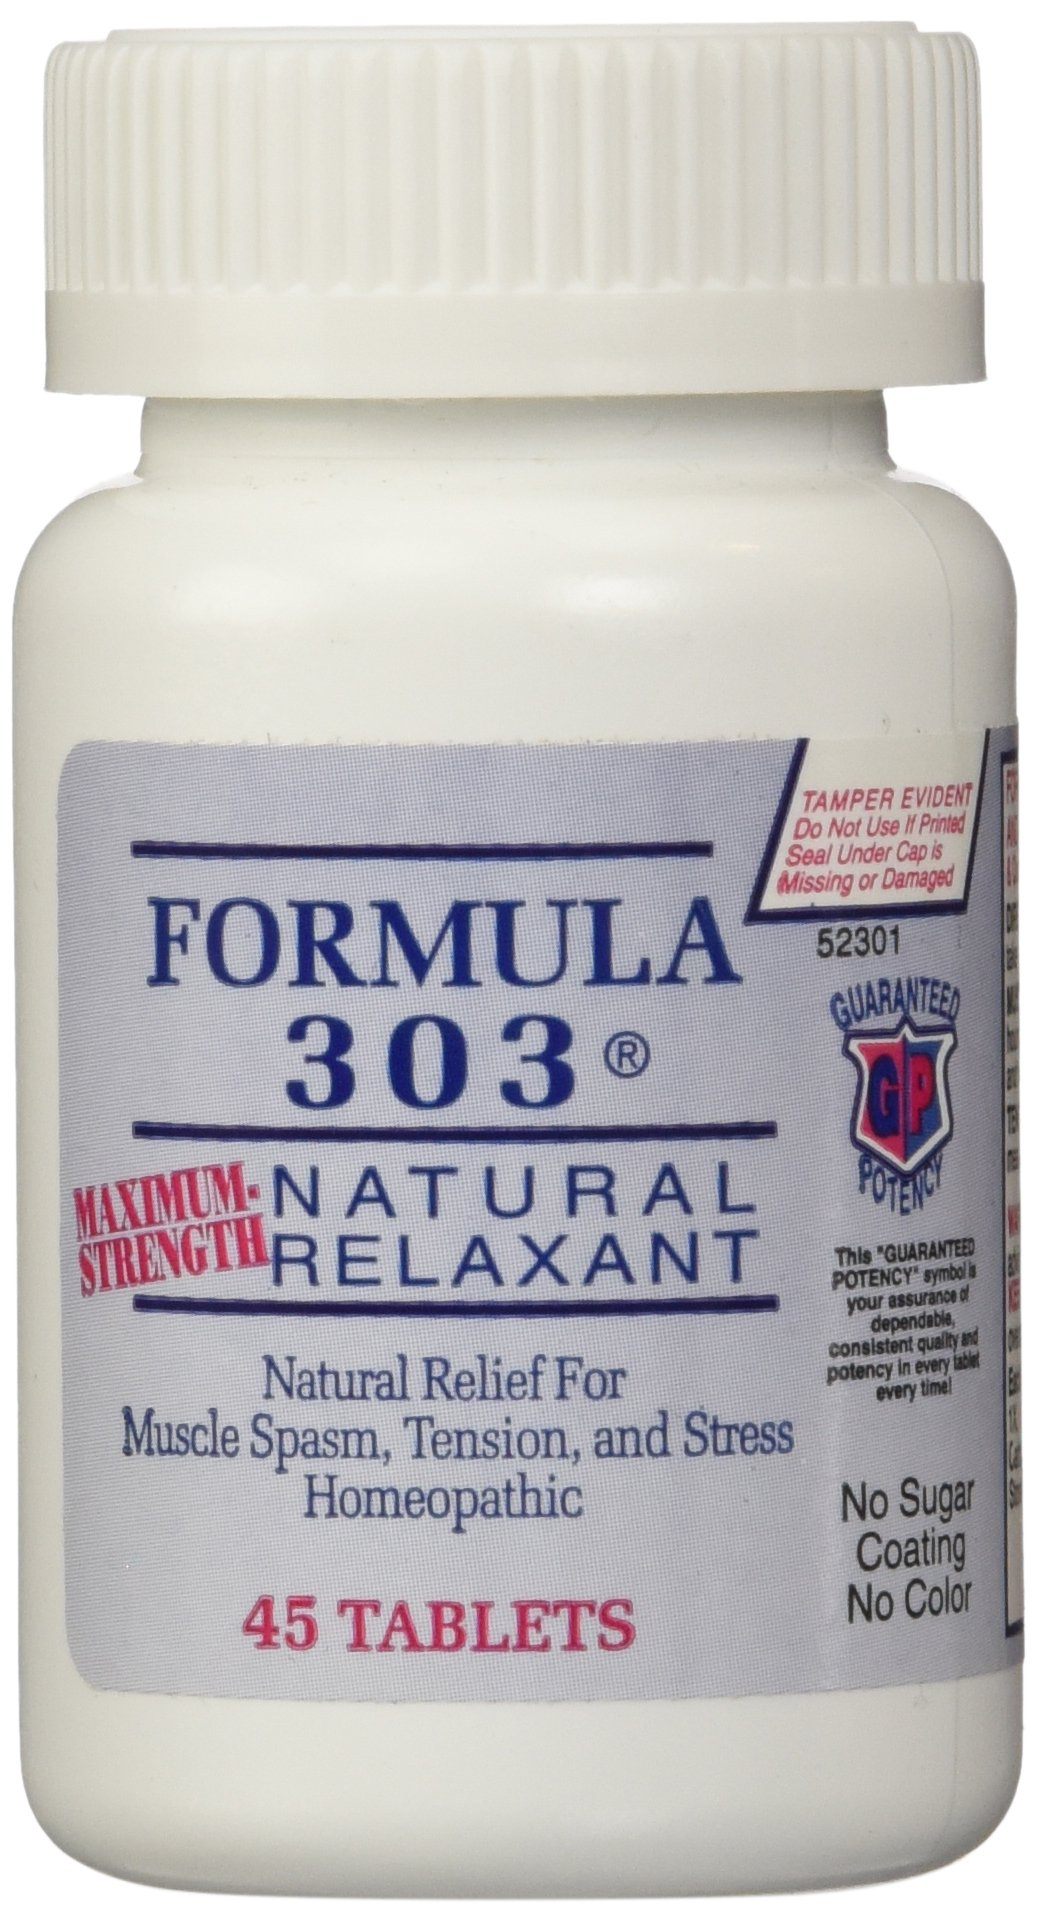 Dee Cee Labs Formula 303 Maximum Strength Natural Relaxant Tablets, 45 Tablets by DEE CEE LABORATORIES